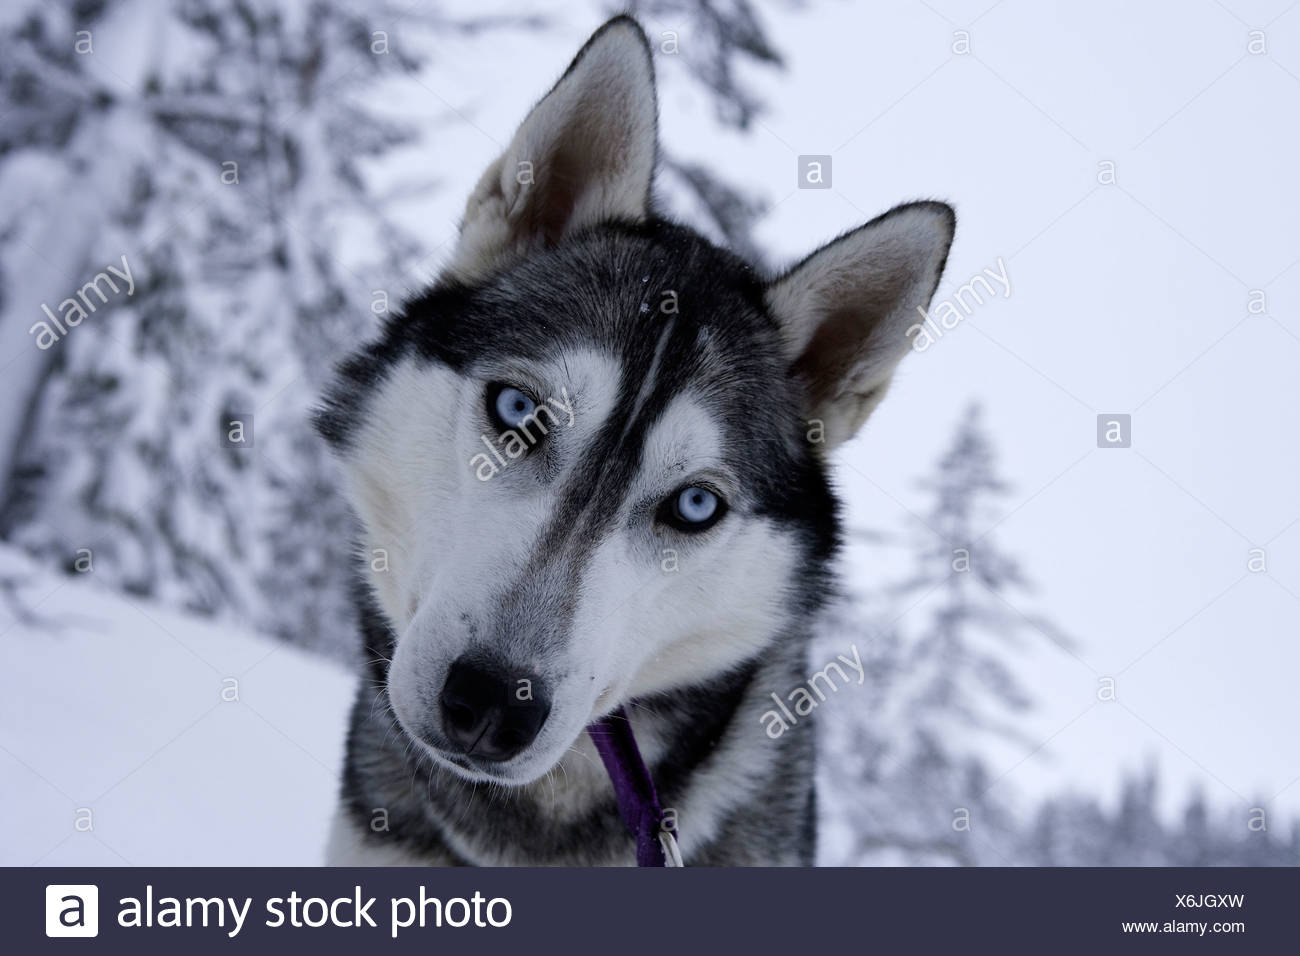 Siberian Husky Sled Dogs, Canis lupus familiaris, Lapland, Finland - Stock Image